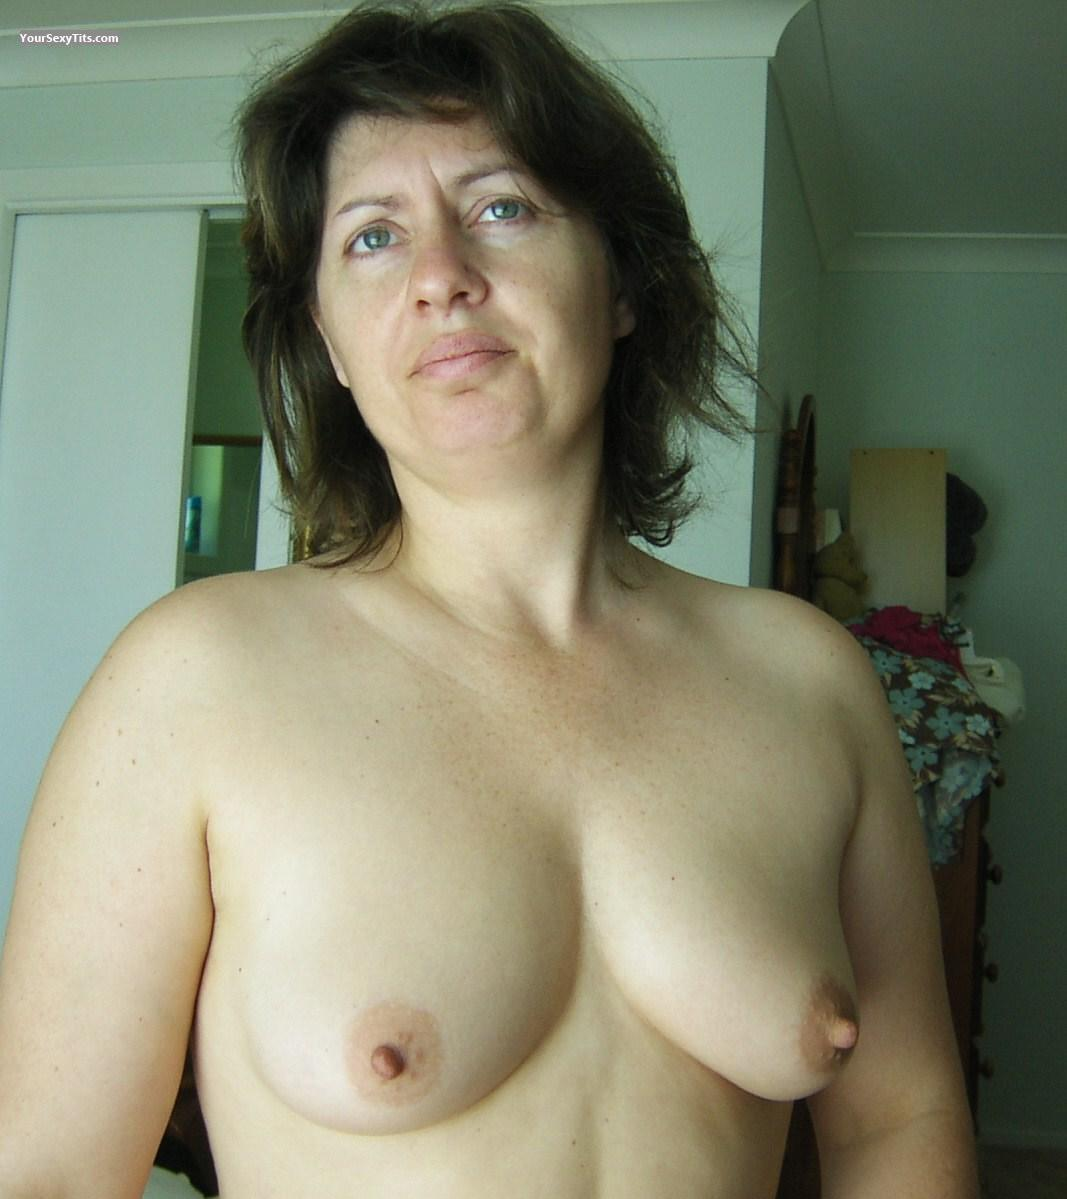 Tit Flash: Medium Tits - Topless Nicky from Australia